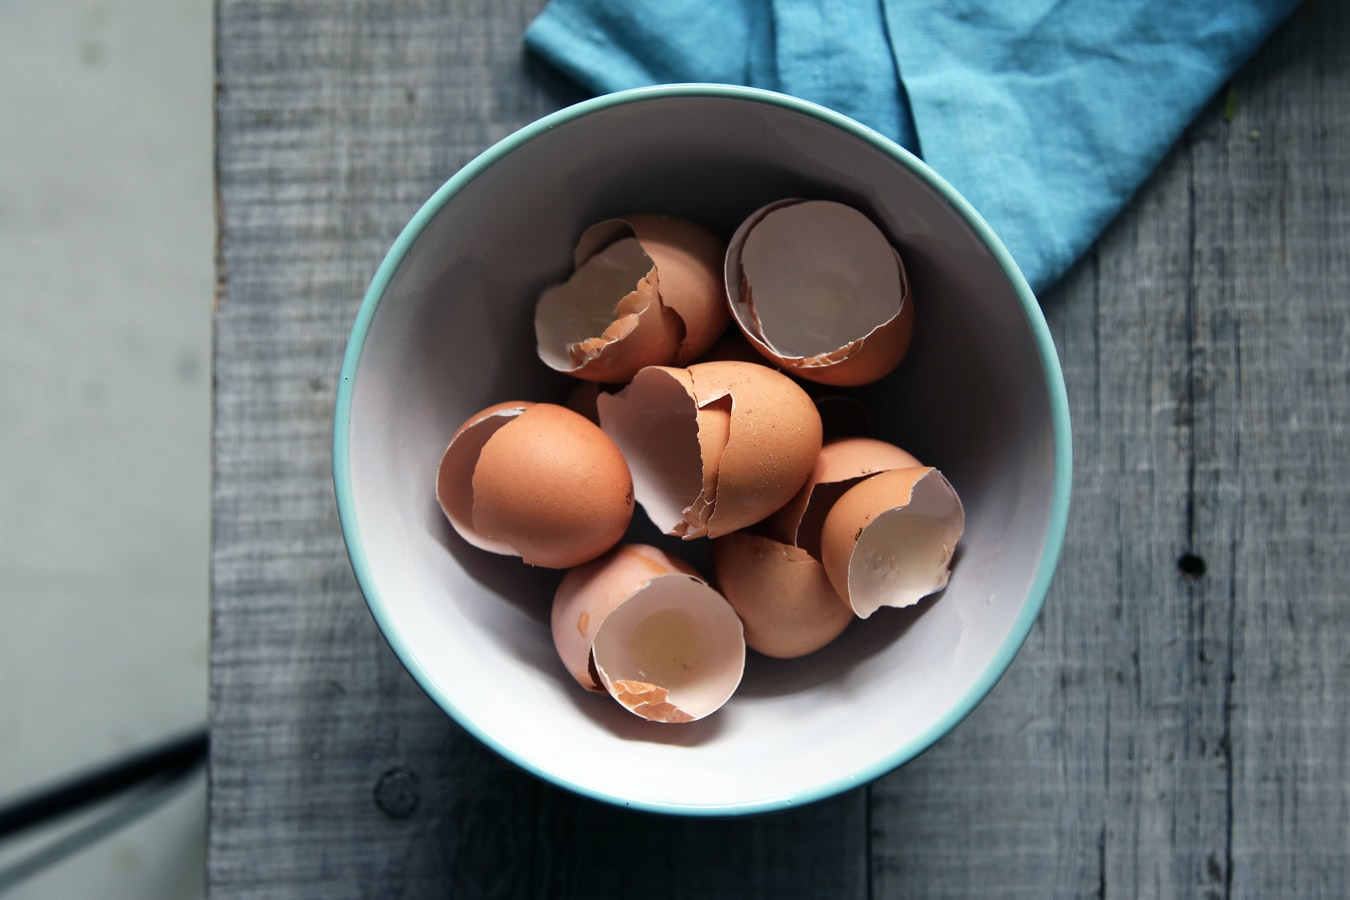 Surprising Uses for Egg Shells